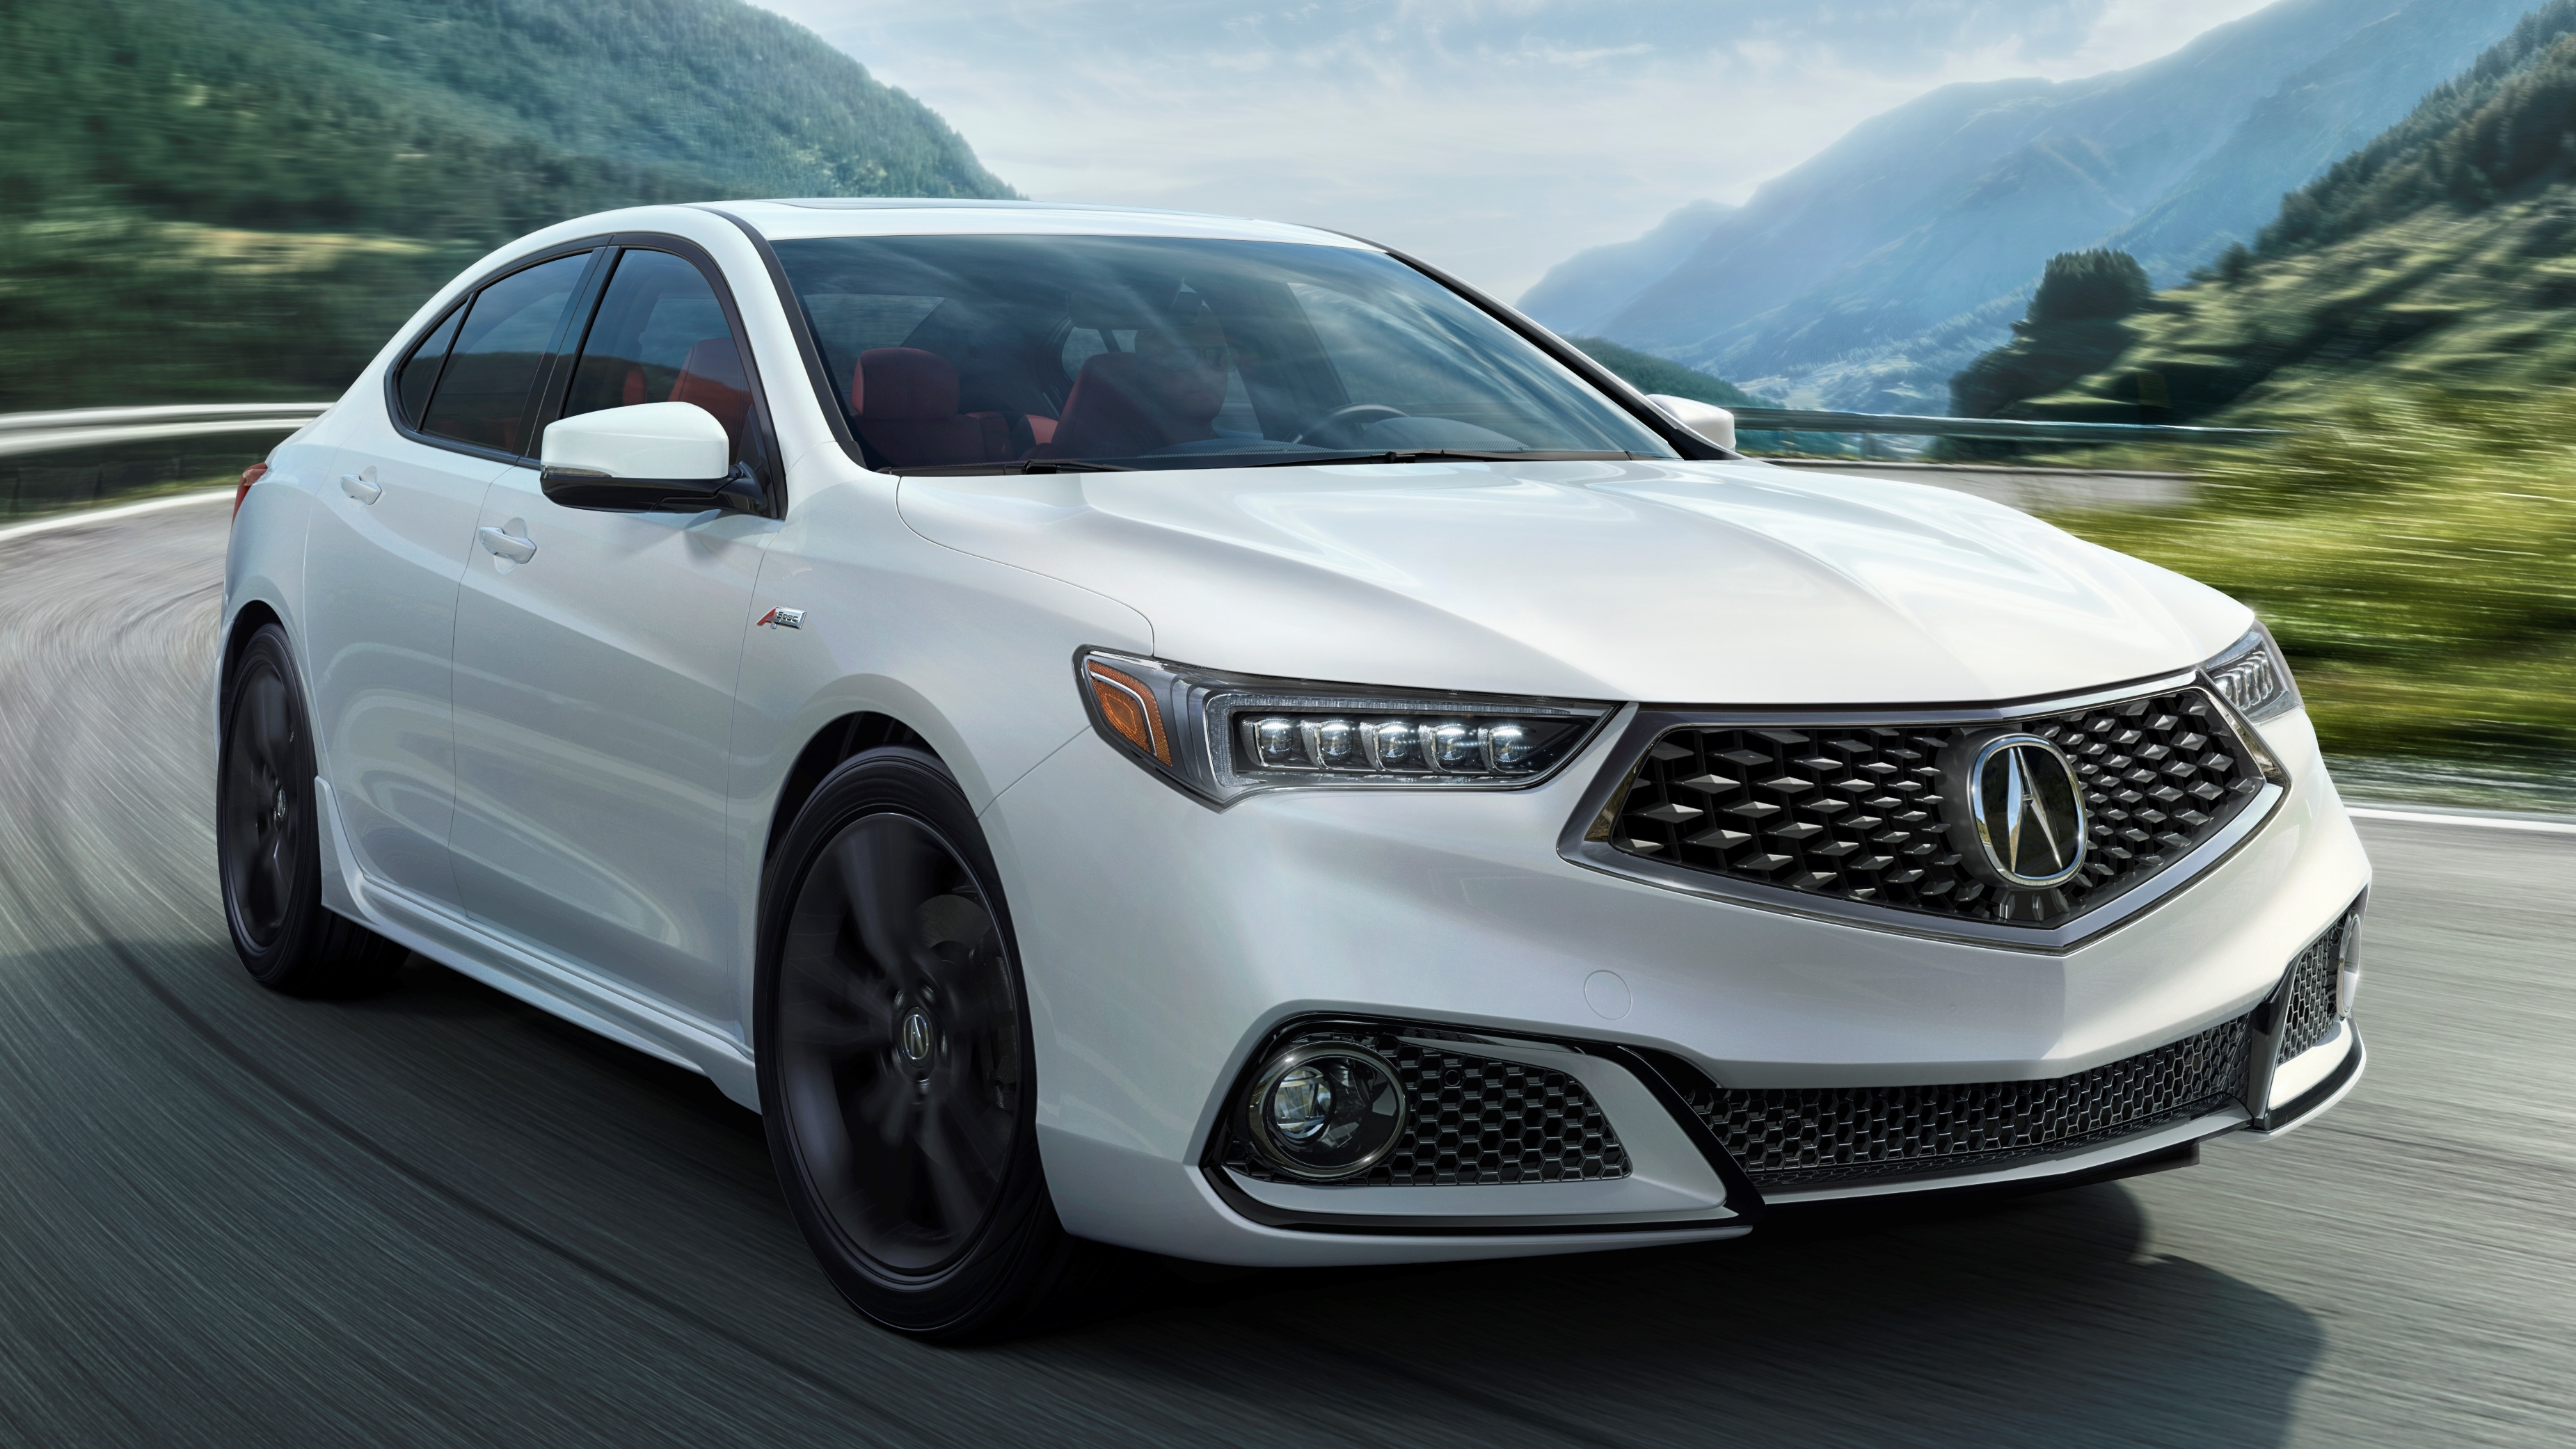 Acura Tlx A Spec Proves You Don T Need An M Or Amg Badge To Look Good Top Speed